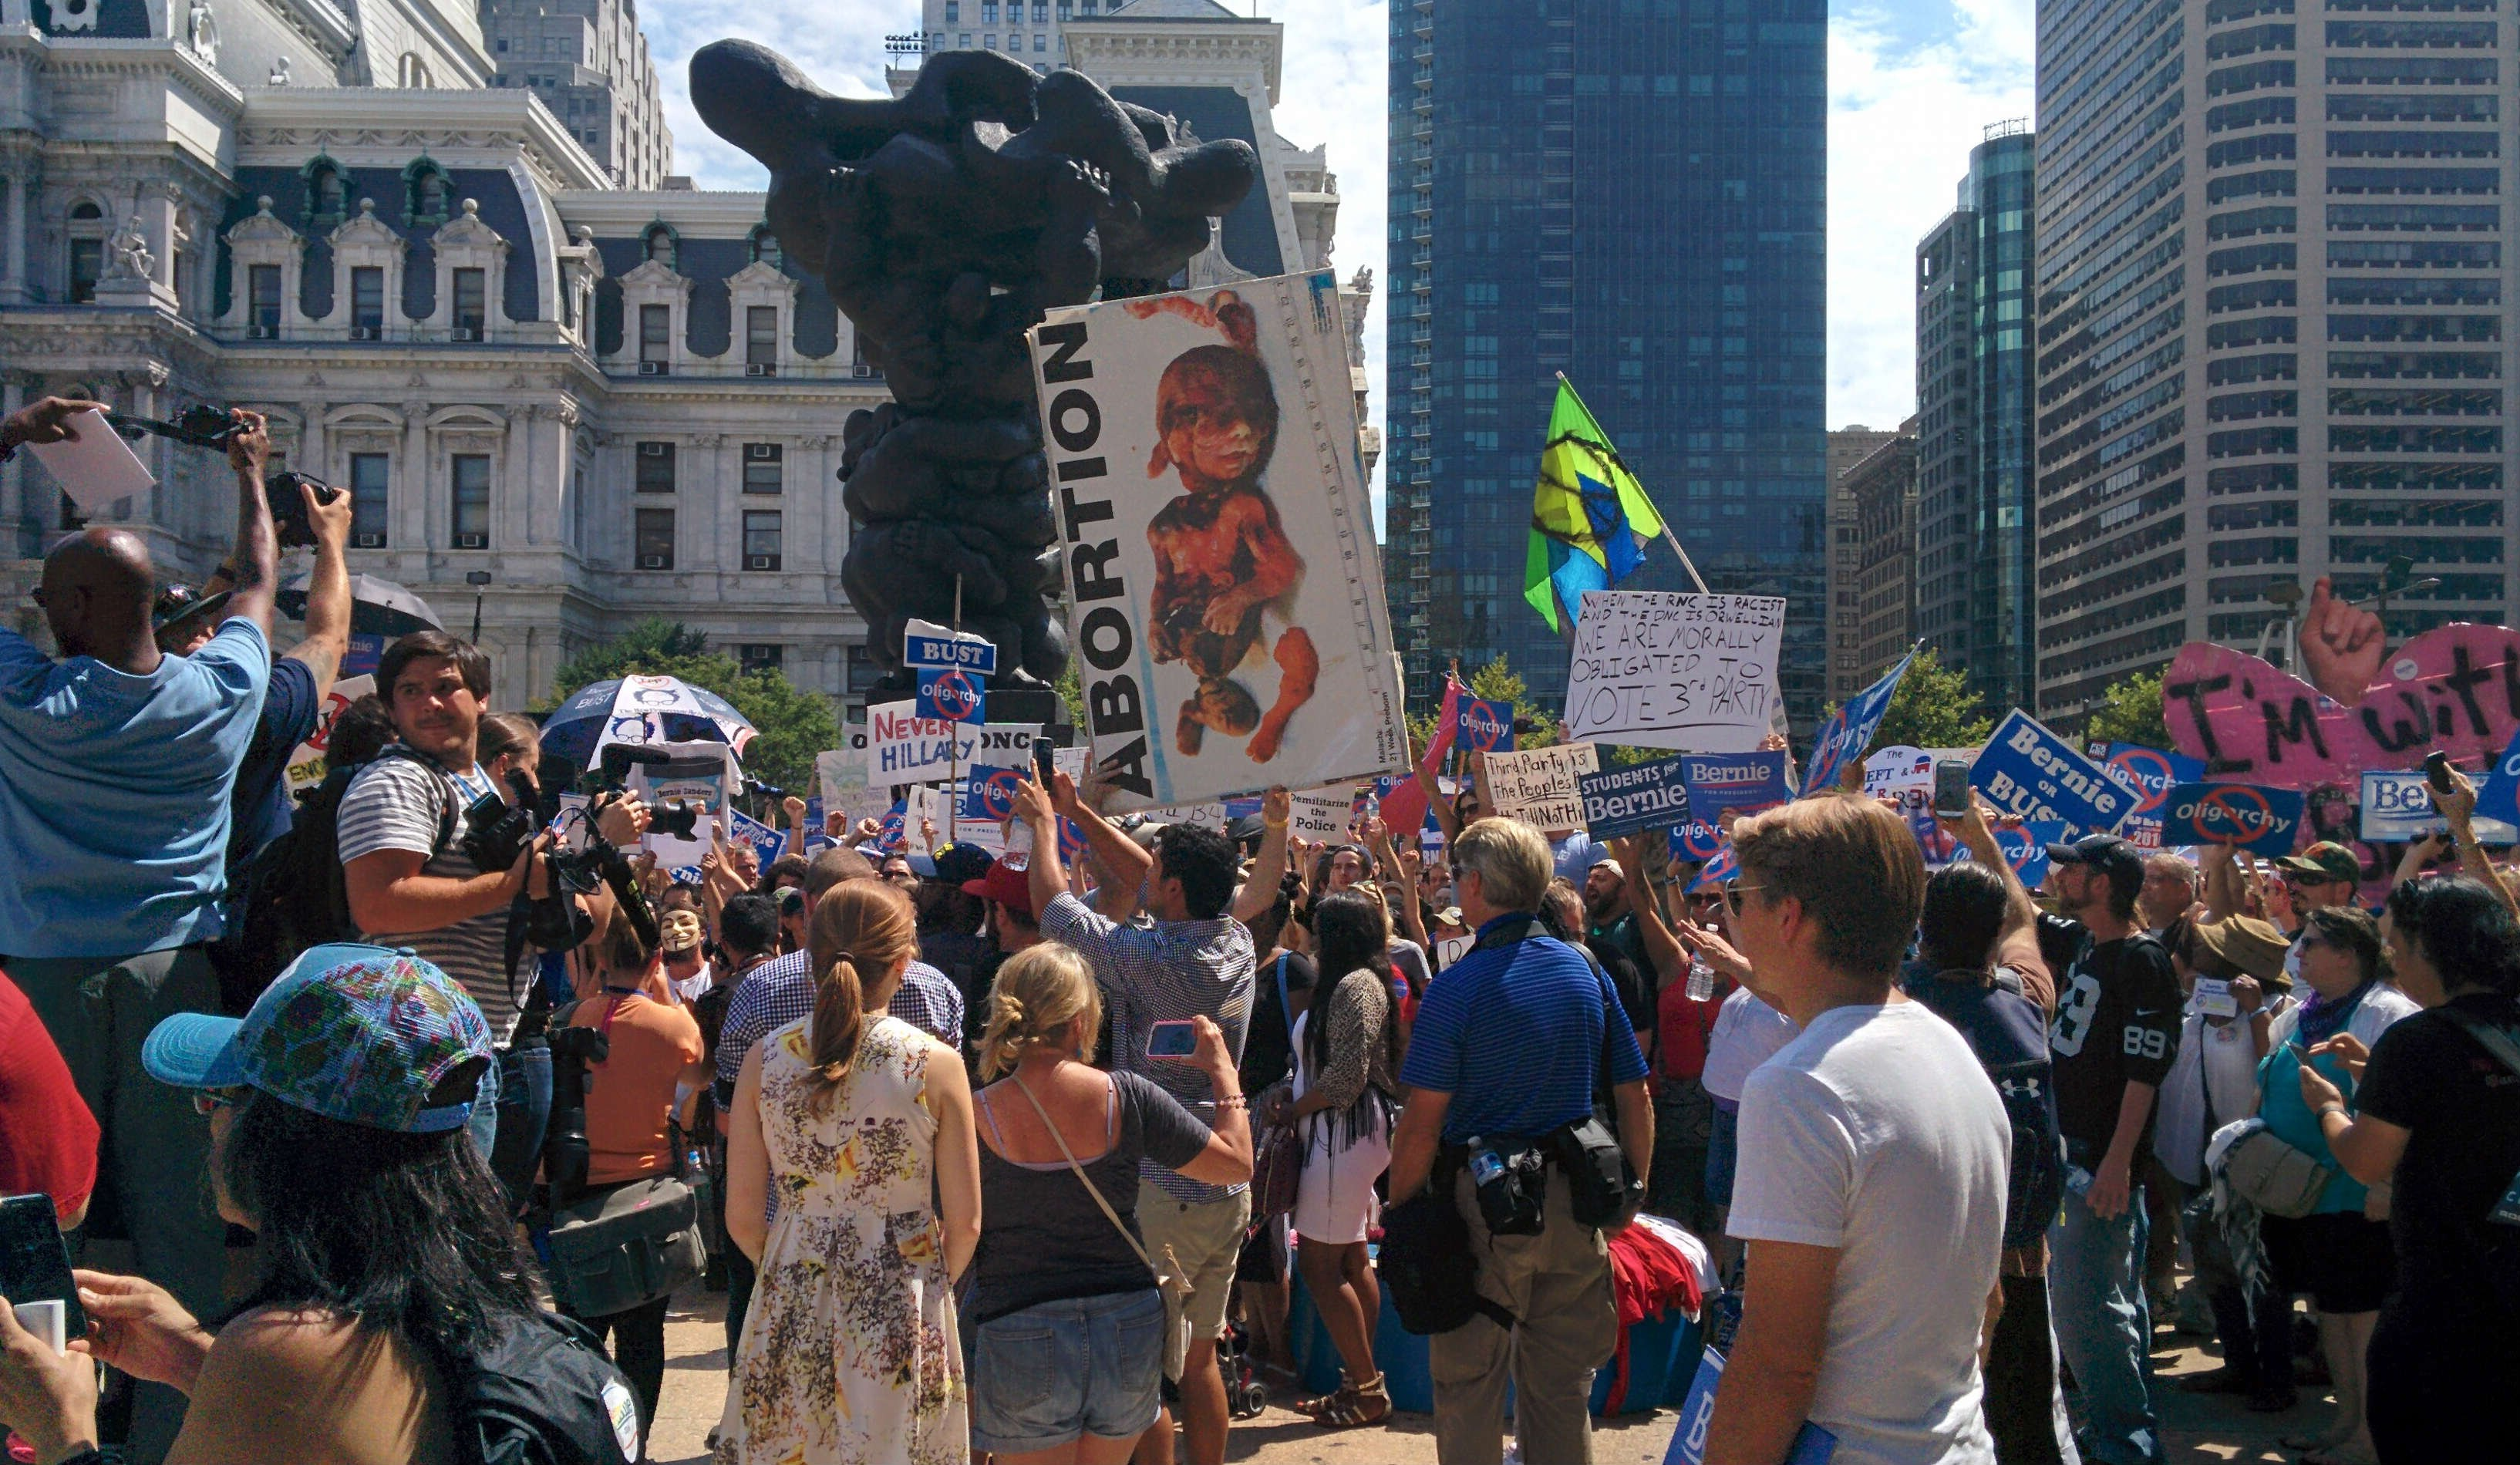 DNC-Protestors-Show-up-views-BODY-Abortion Poster in crowd.jpg